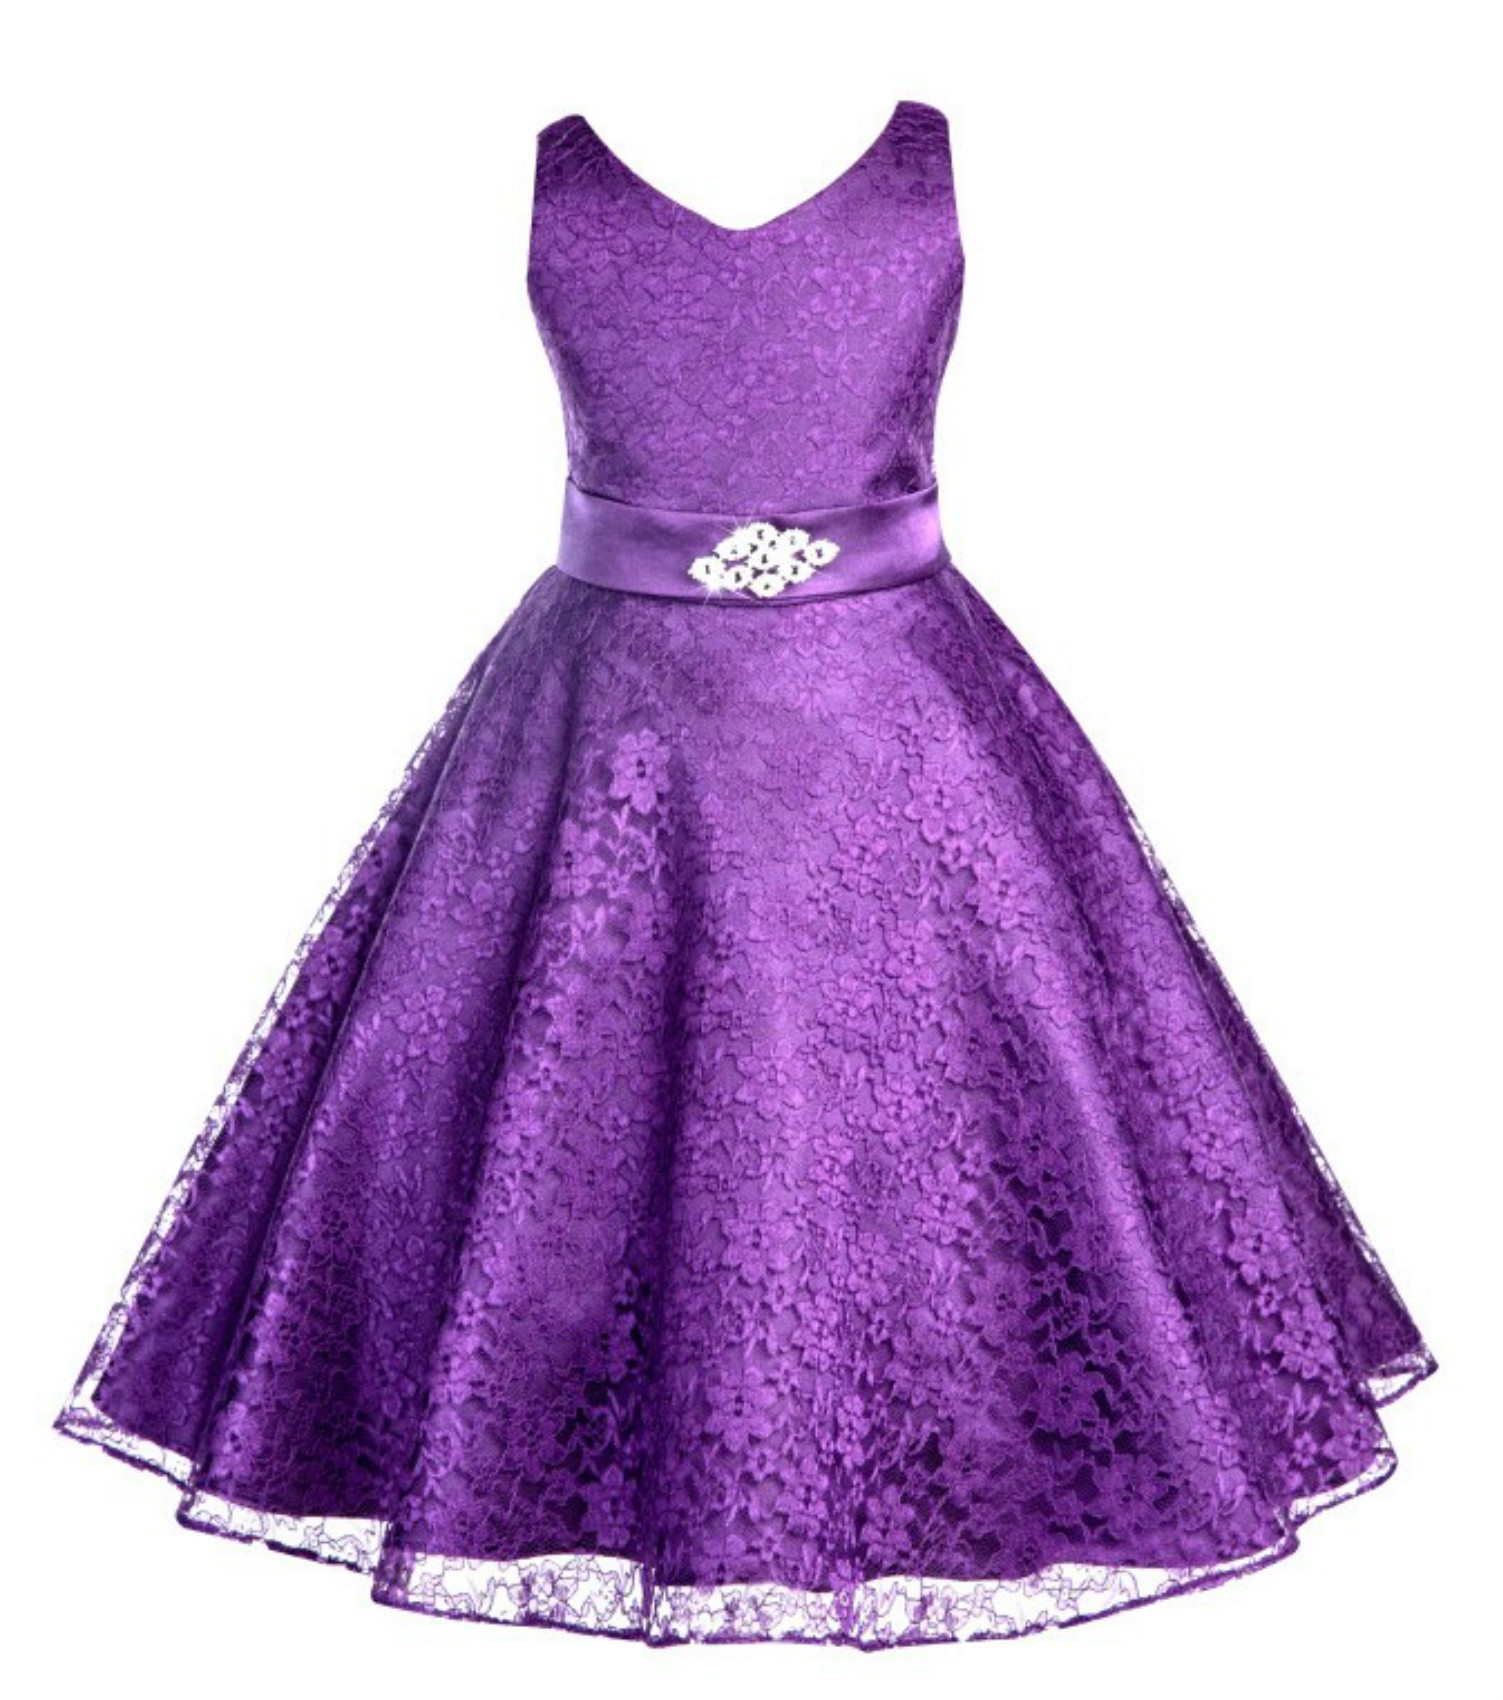 Purple Floral Lace Overlay V-Neck Rhinestone Flower Girl Dress 166S